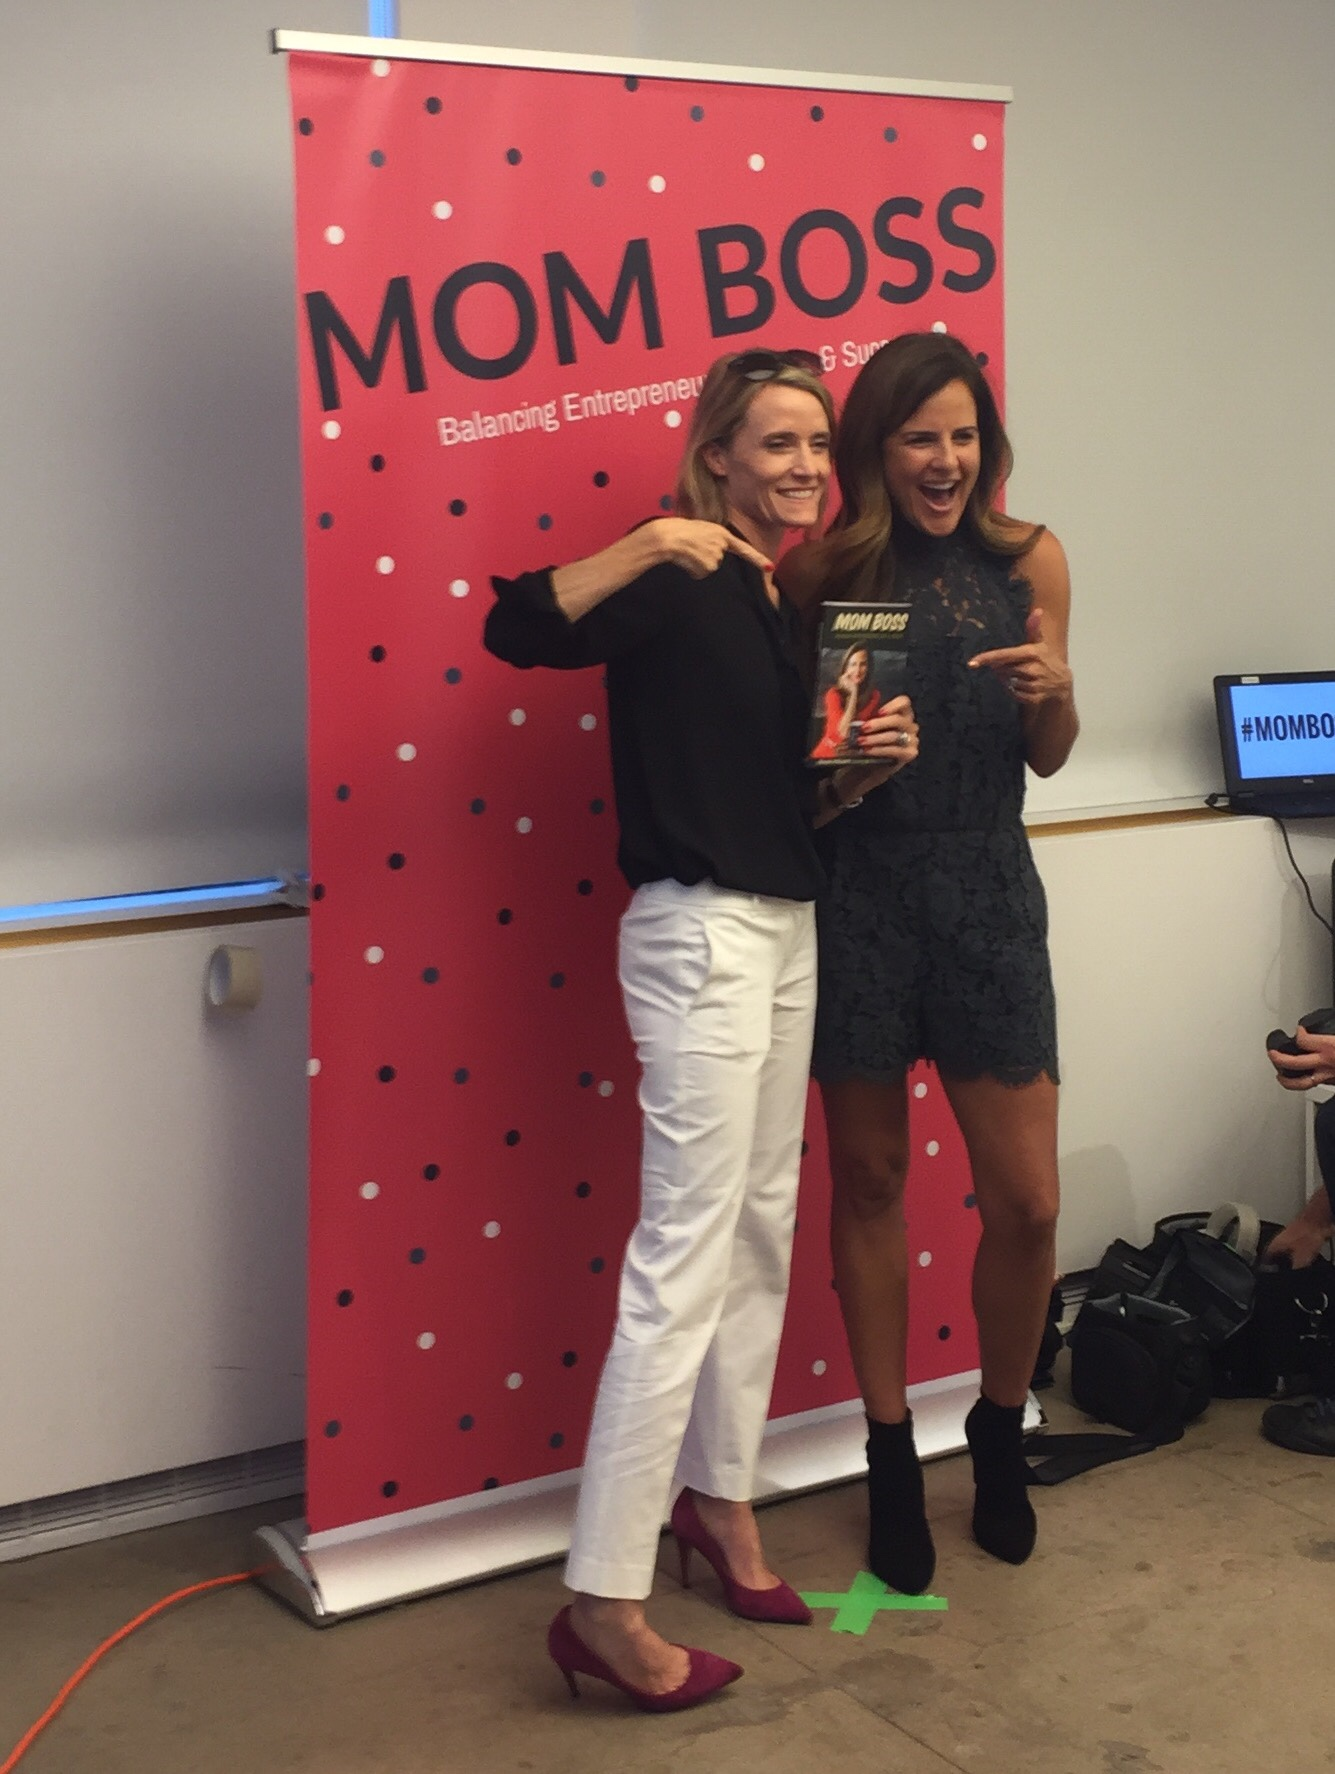 Carley Roney and Mom Boss author Nicole Feliciano pose at the book launch party.